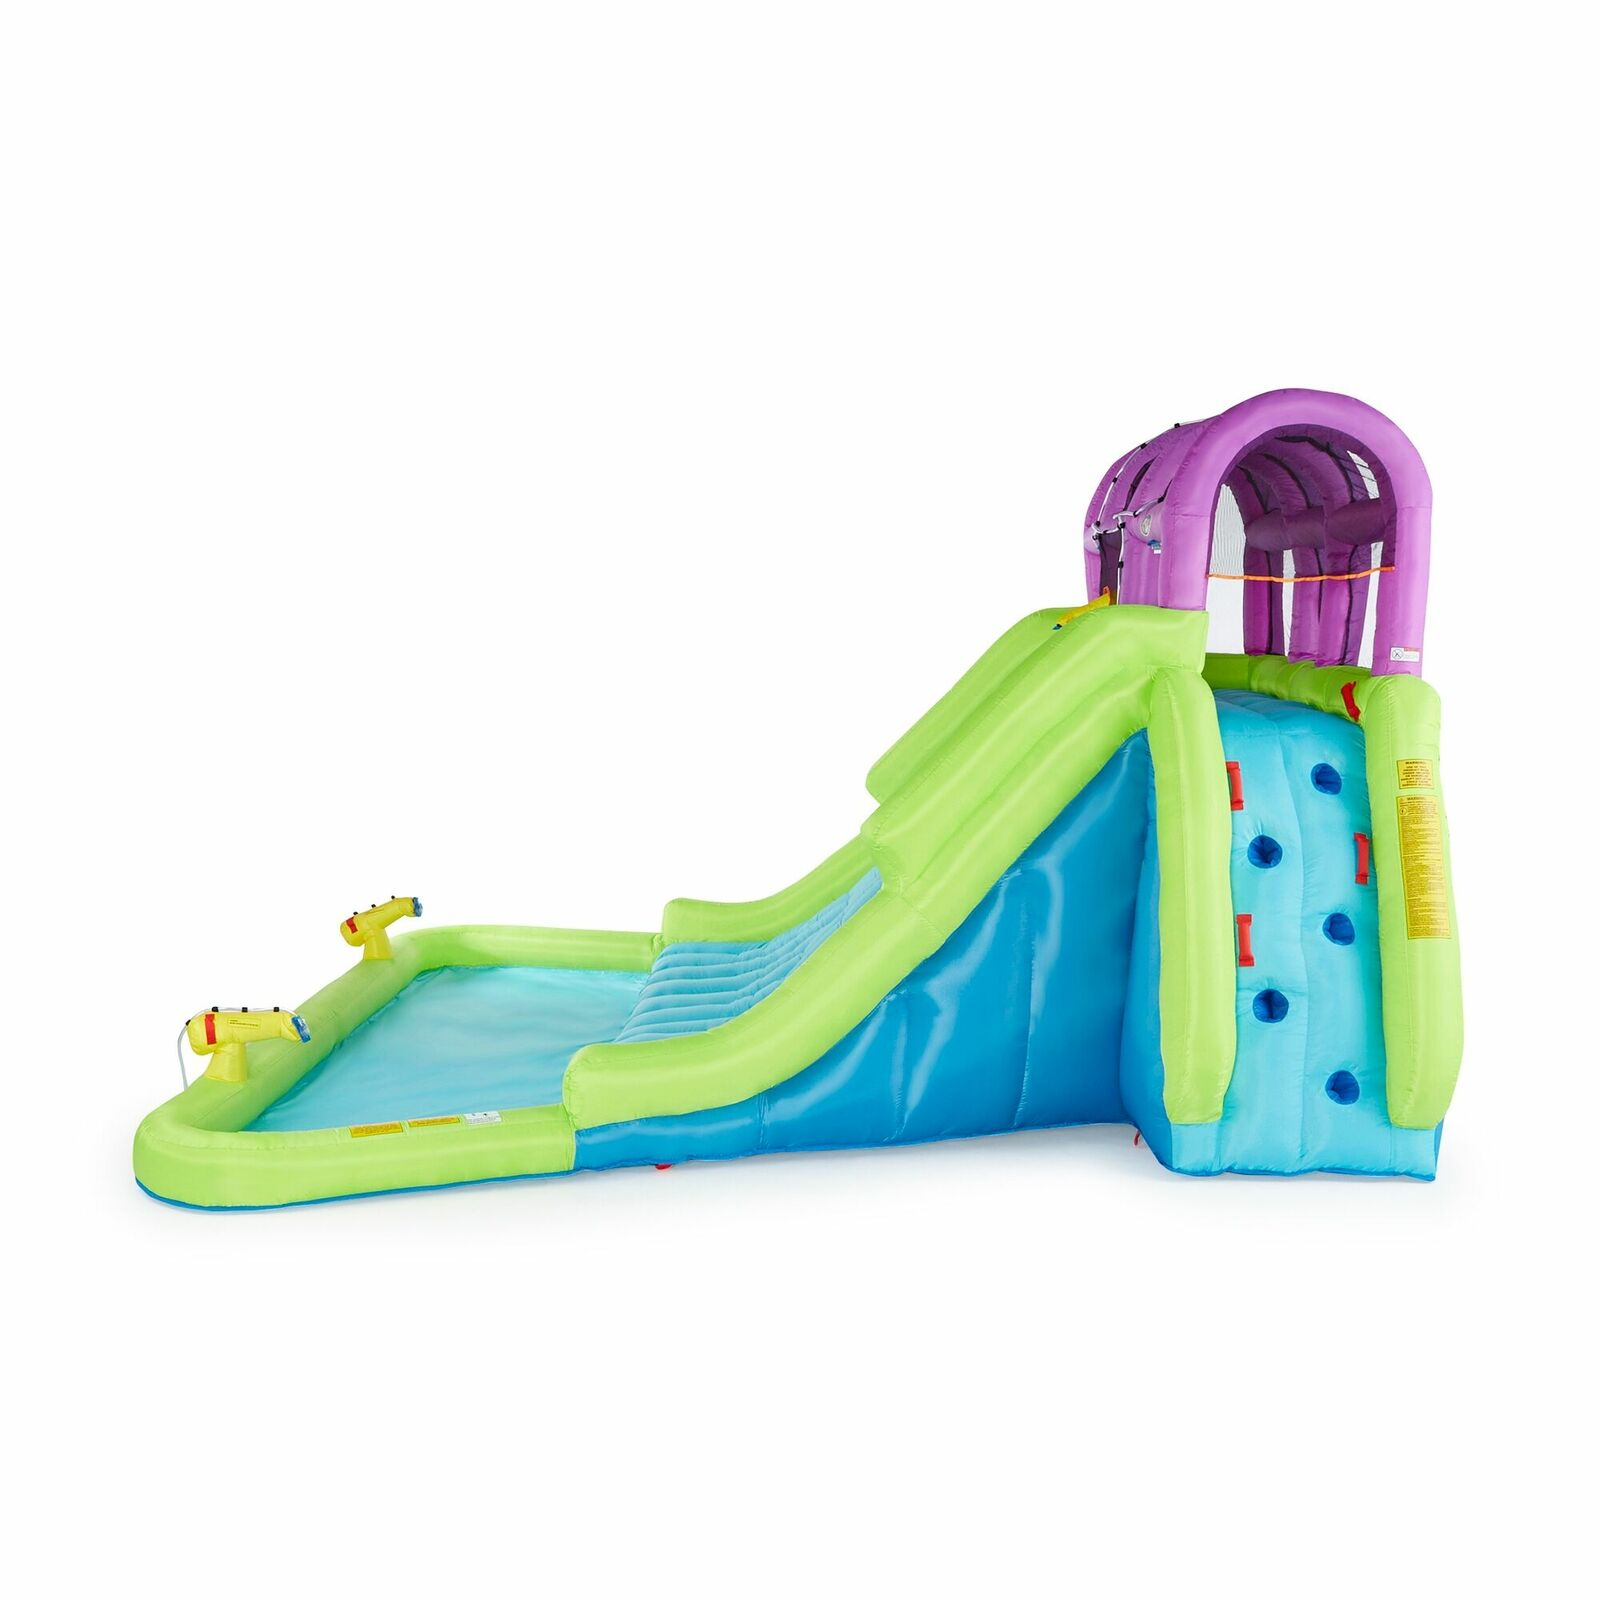 Inflatable Water Park Crocodile Island Slide Blast Zone For Sale Online Ebay